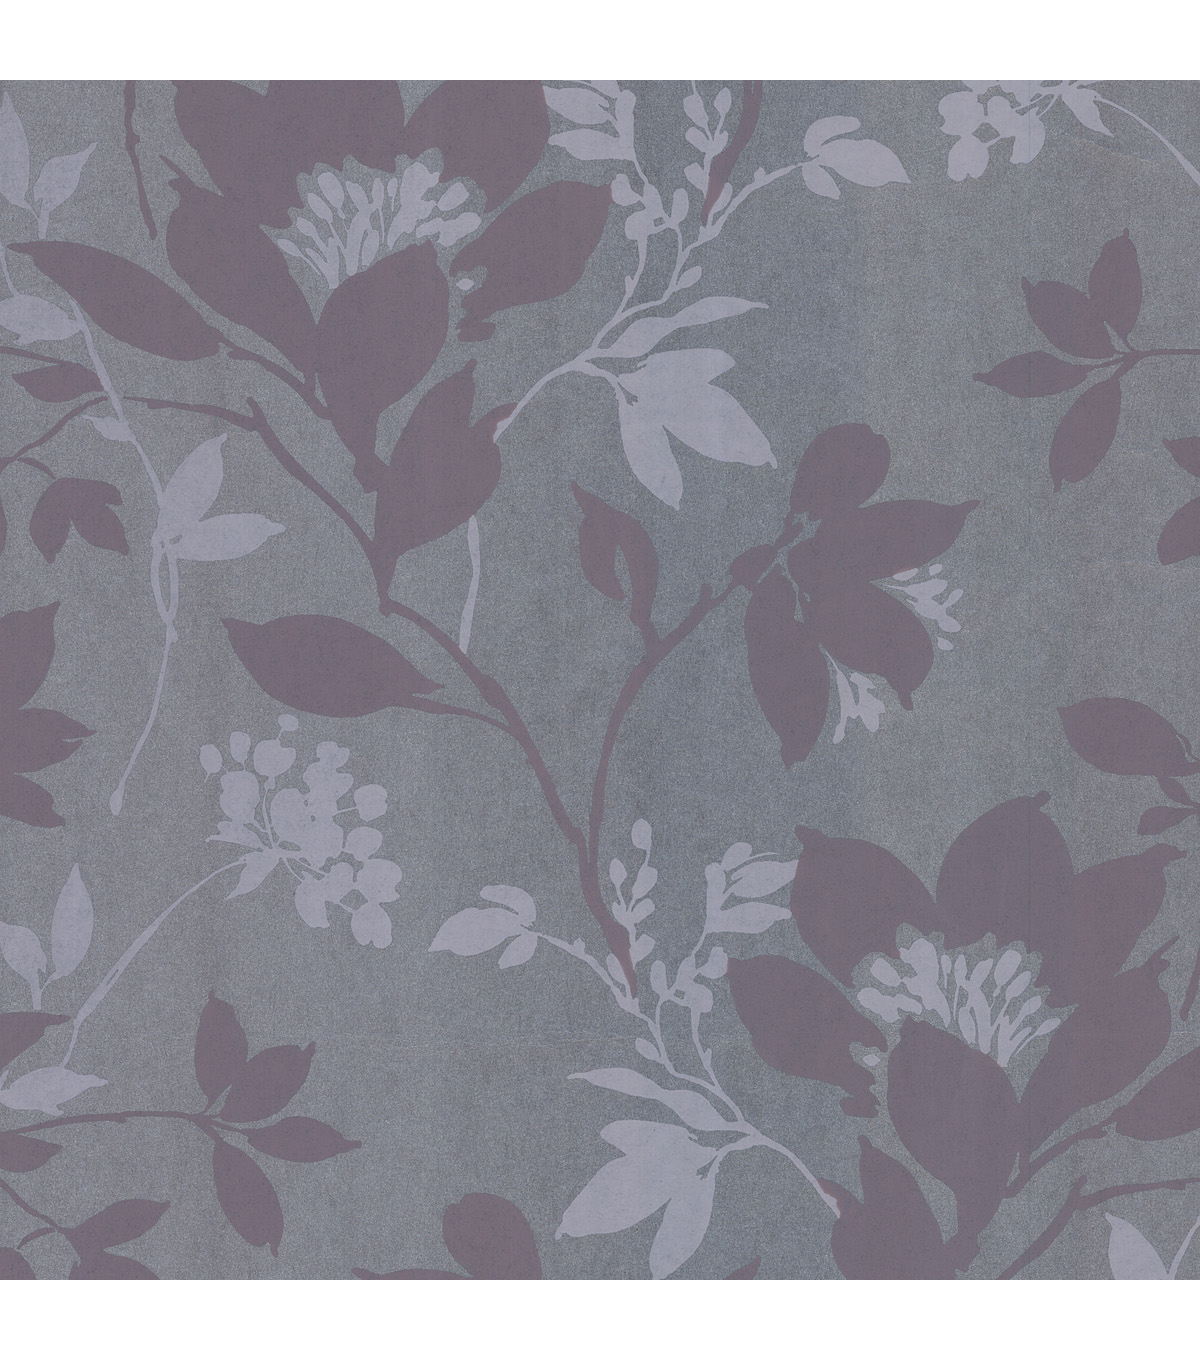 Carina Silver Silhouette Floral Wallpaper Sample